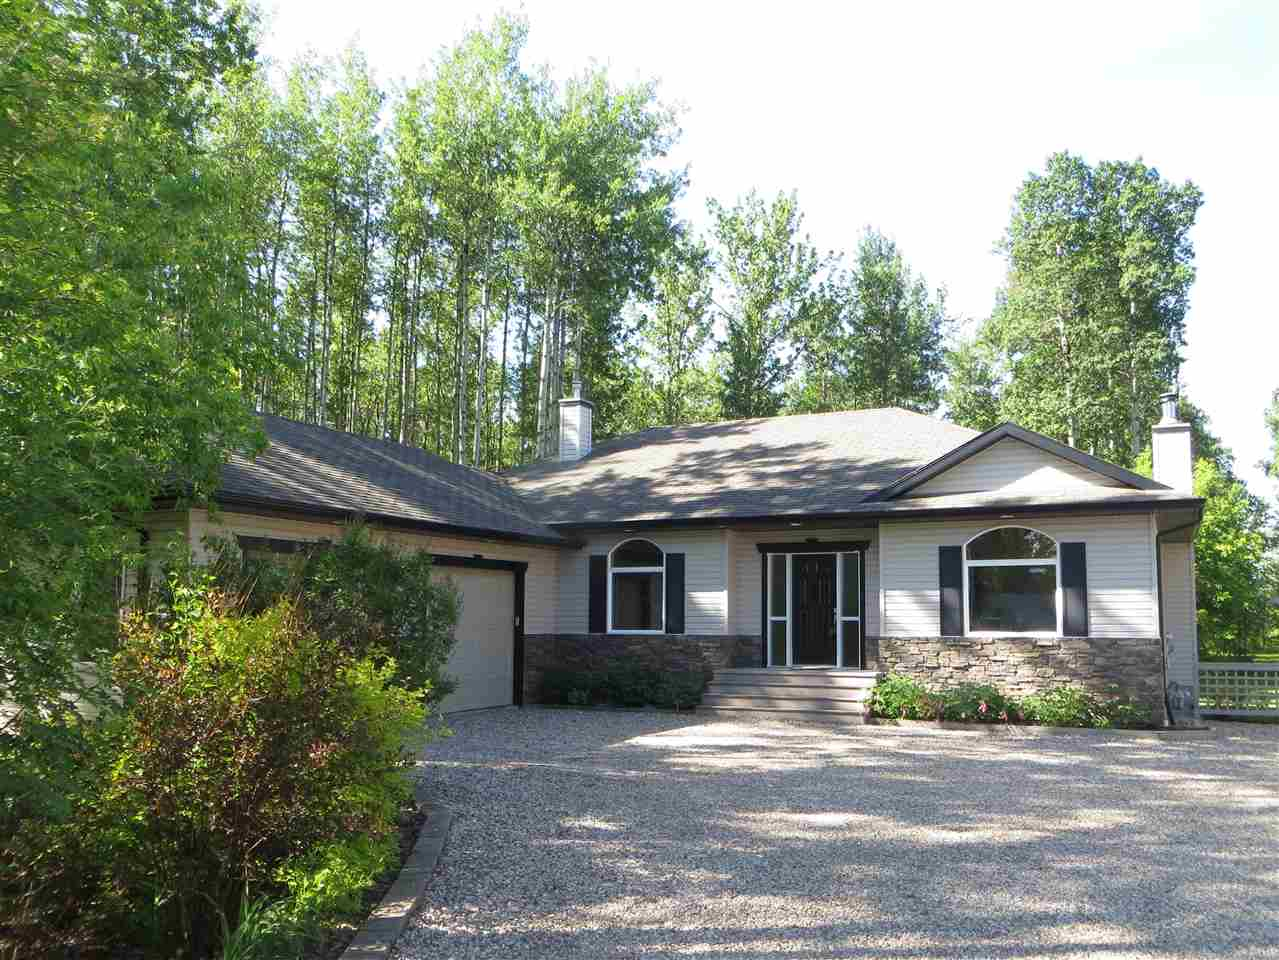 A park like setting on your own land! Private treed 3 acres with trails, and no neighbours behind you. Meticulously kept  home w/ open floorplan & vaulted ceilings has over 3500 sq ft of developed space. Double heated garage 24x22 and a 24x32 heated shop with attached shed + RV parking pad has room for all your toys. Tile and hardwood flooring, 9 foot ceilings, wood fireplace, maple kitchen with ample cabinet space including pot and pan drawers. The master bedroom can be your retreat with soaker tub ensuite. A den that could easily be a 2nd bedroom is on the main floor. Circular staircase leads you to the basement, a perfect hangout area w/ family room, media room, wet bar/kitchenette, 2 large bedrooms with walk in closets & a full bathroom. In floor heating to keep you warm, plus the 9 foot ceilings and large windows brighten the space. Enjoy the secluded setting off your maintenance free deck. All this 4 minutes from Spruce Grove!